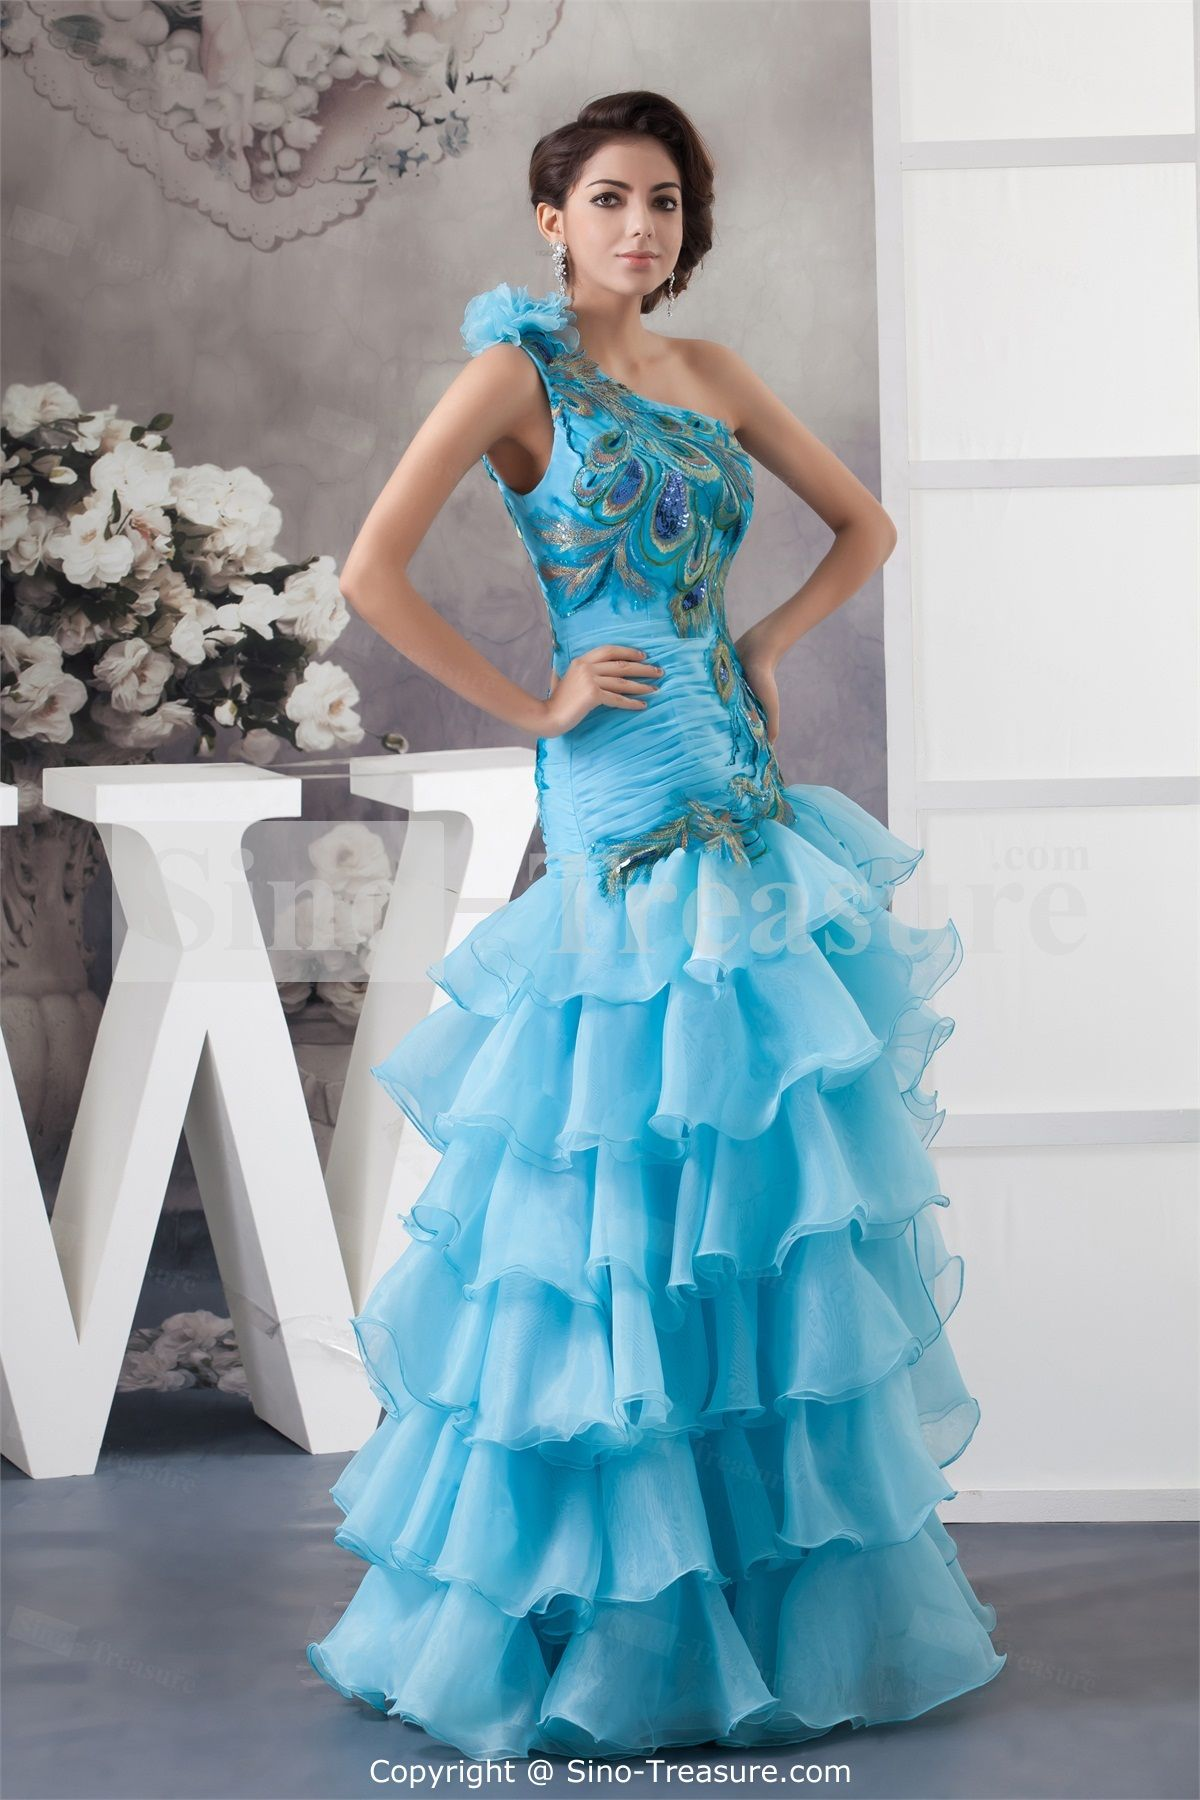 Blue One Shoulder Apple Sleeveless Princess Prom Dress ...